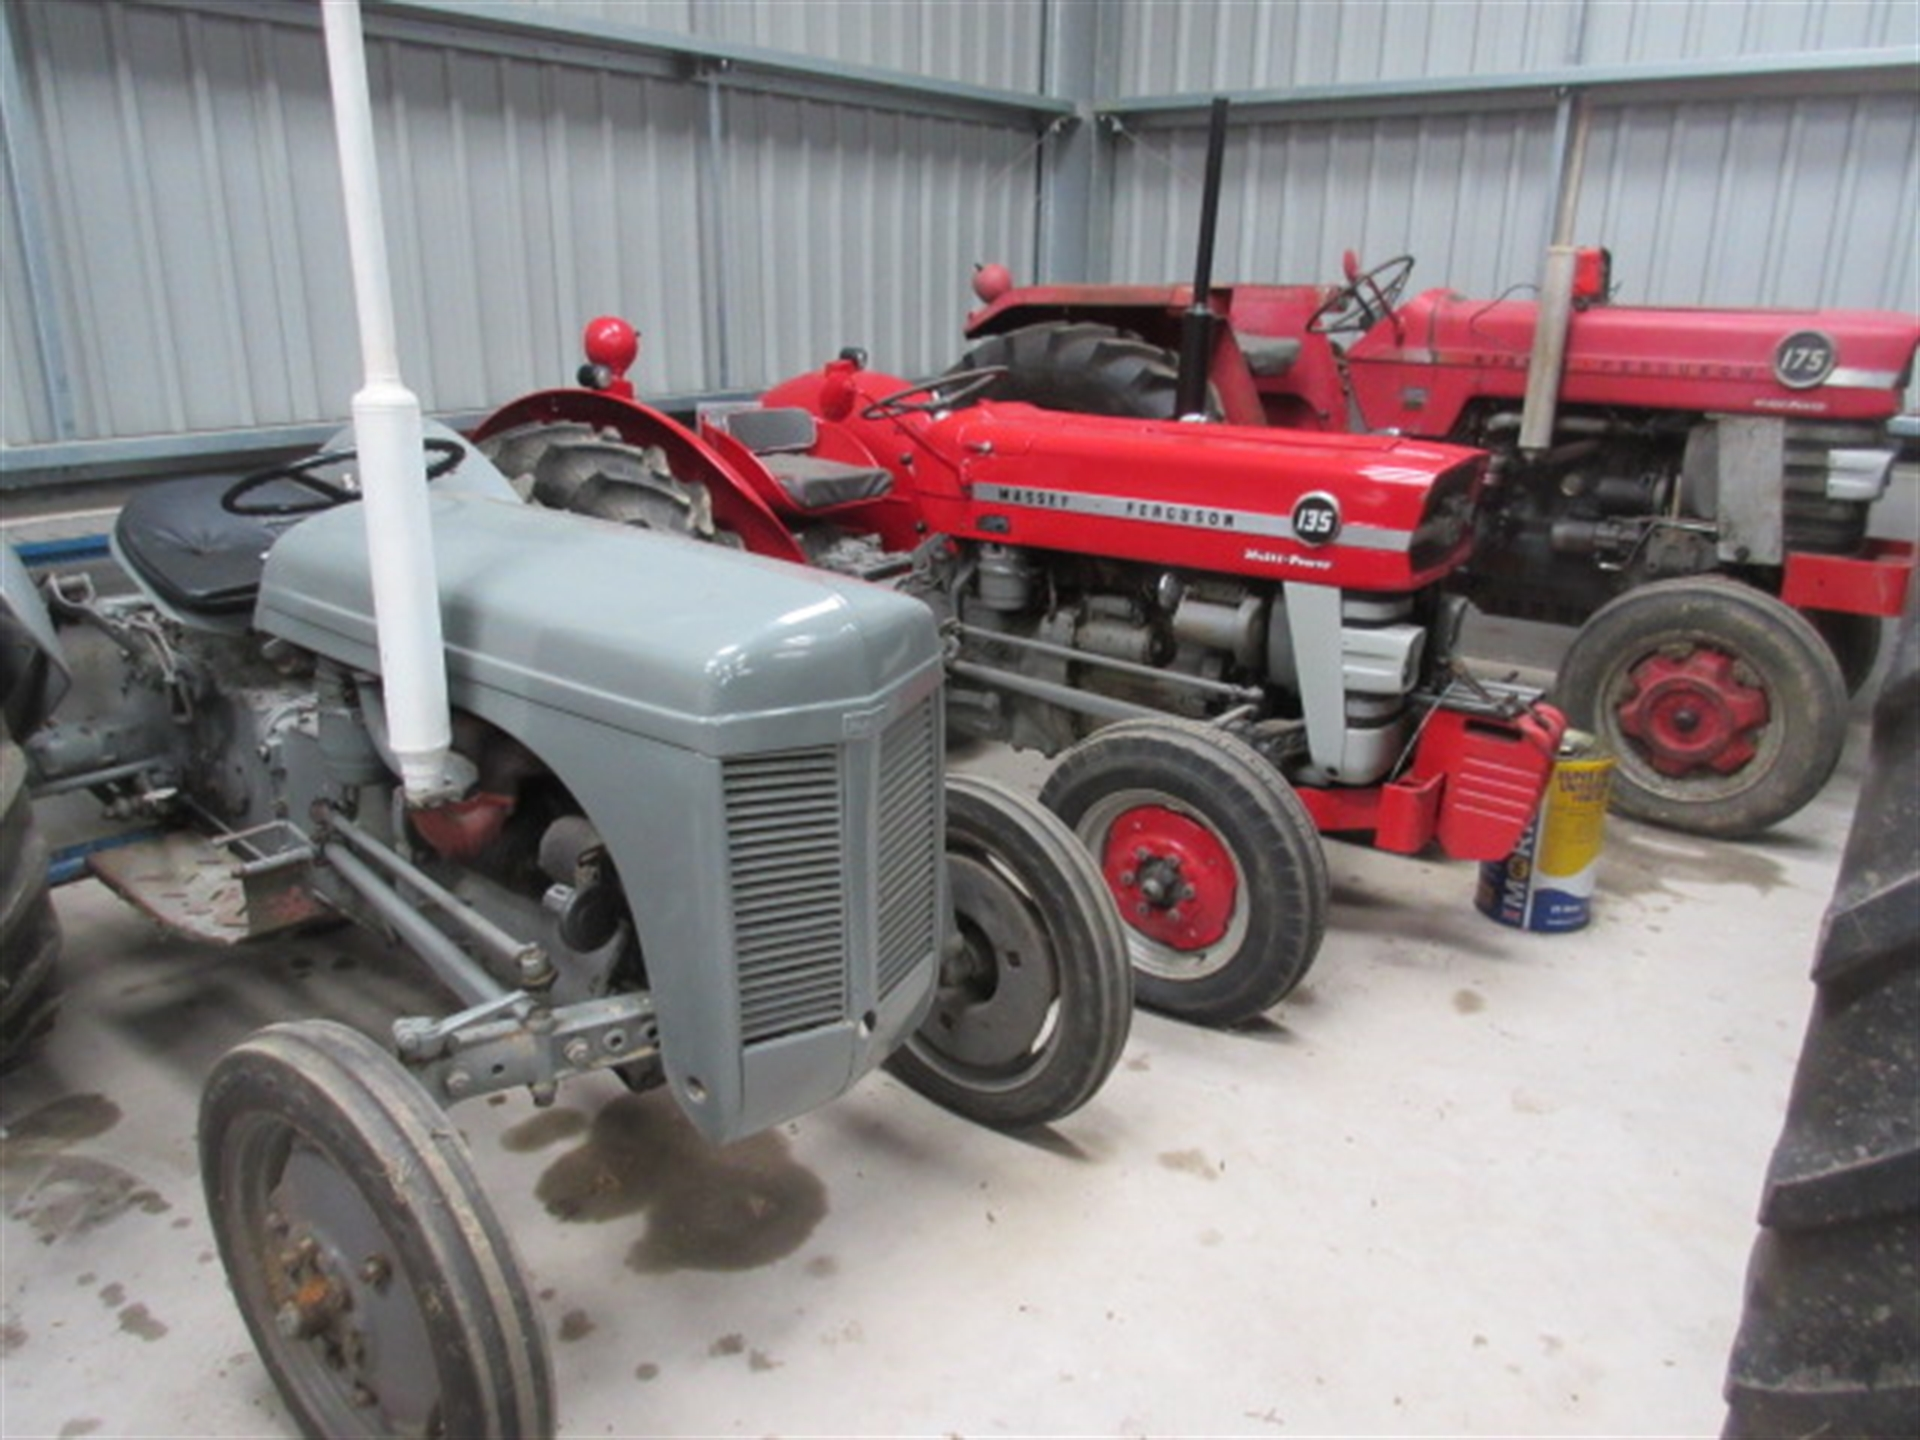 Auction sale of classic & vintage tractors, modern machinery